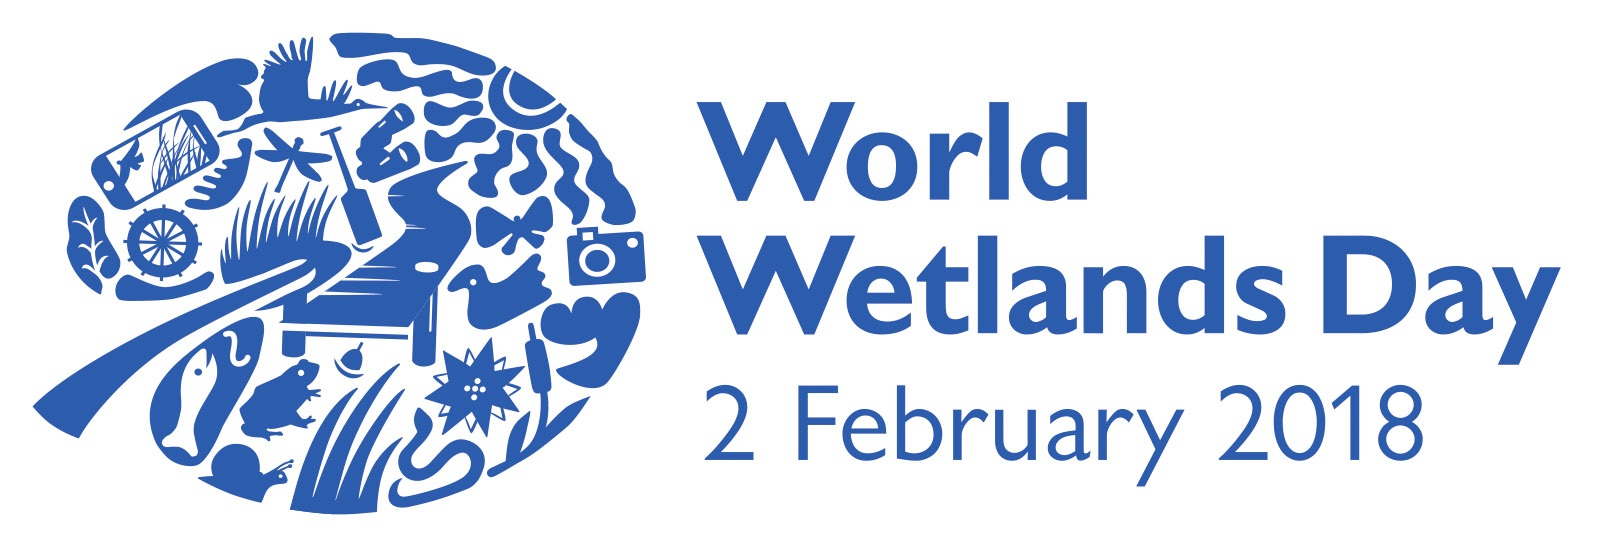 World Wetlands Day 2018 Logo